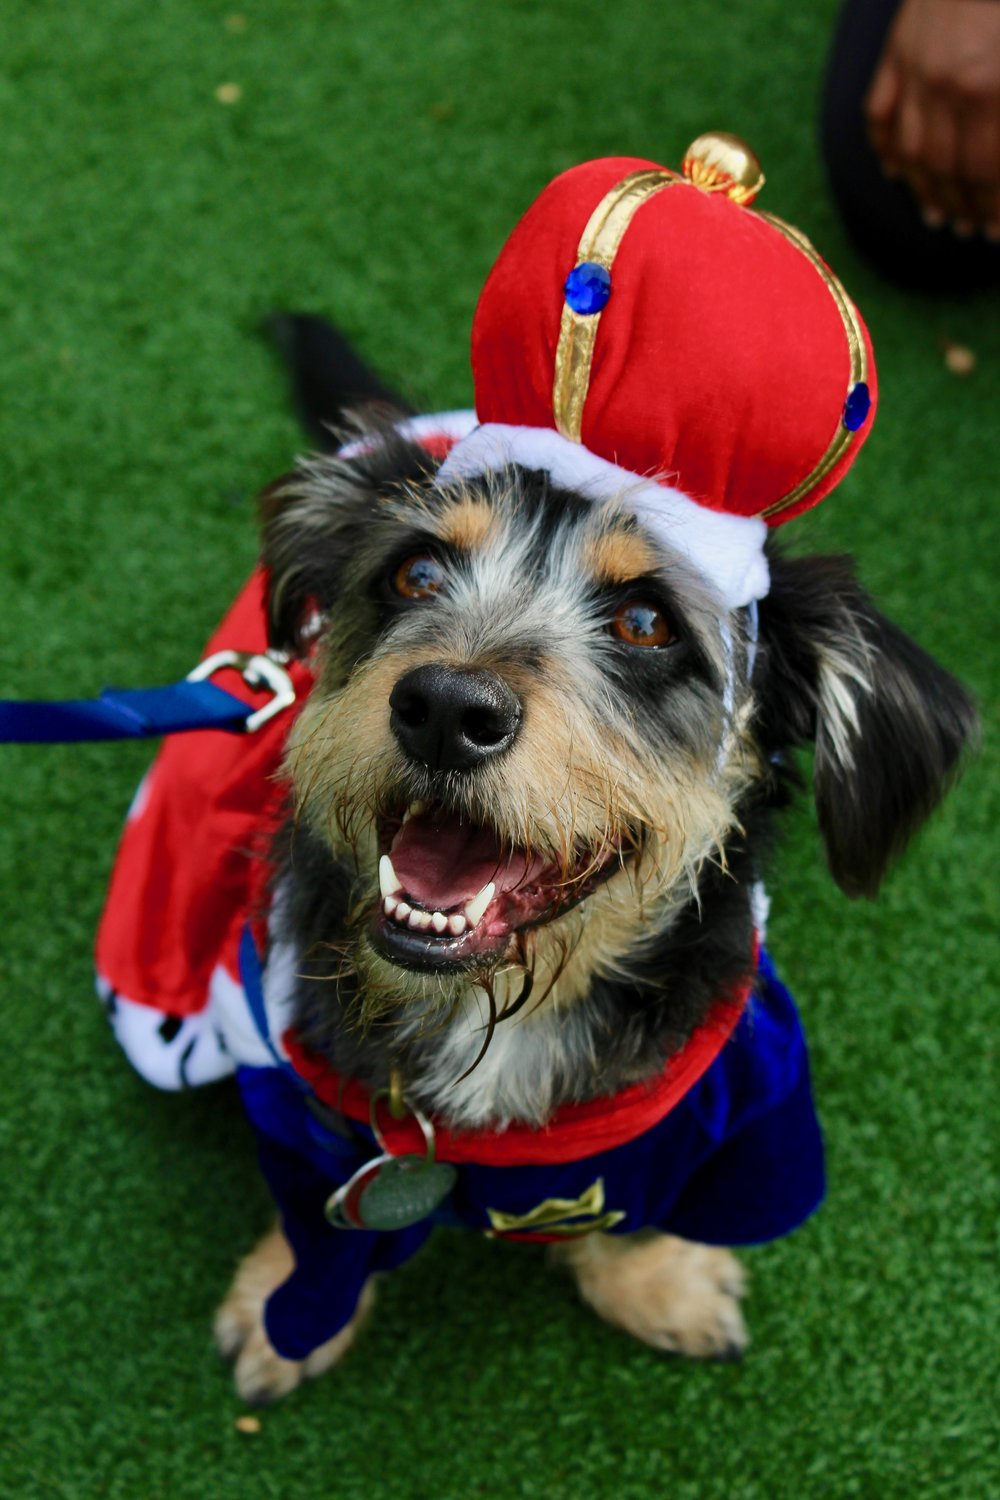 Sir Basile placed third in the event's costume contest. C ourtesy of the Atlanta Humane Society.